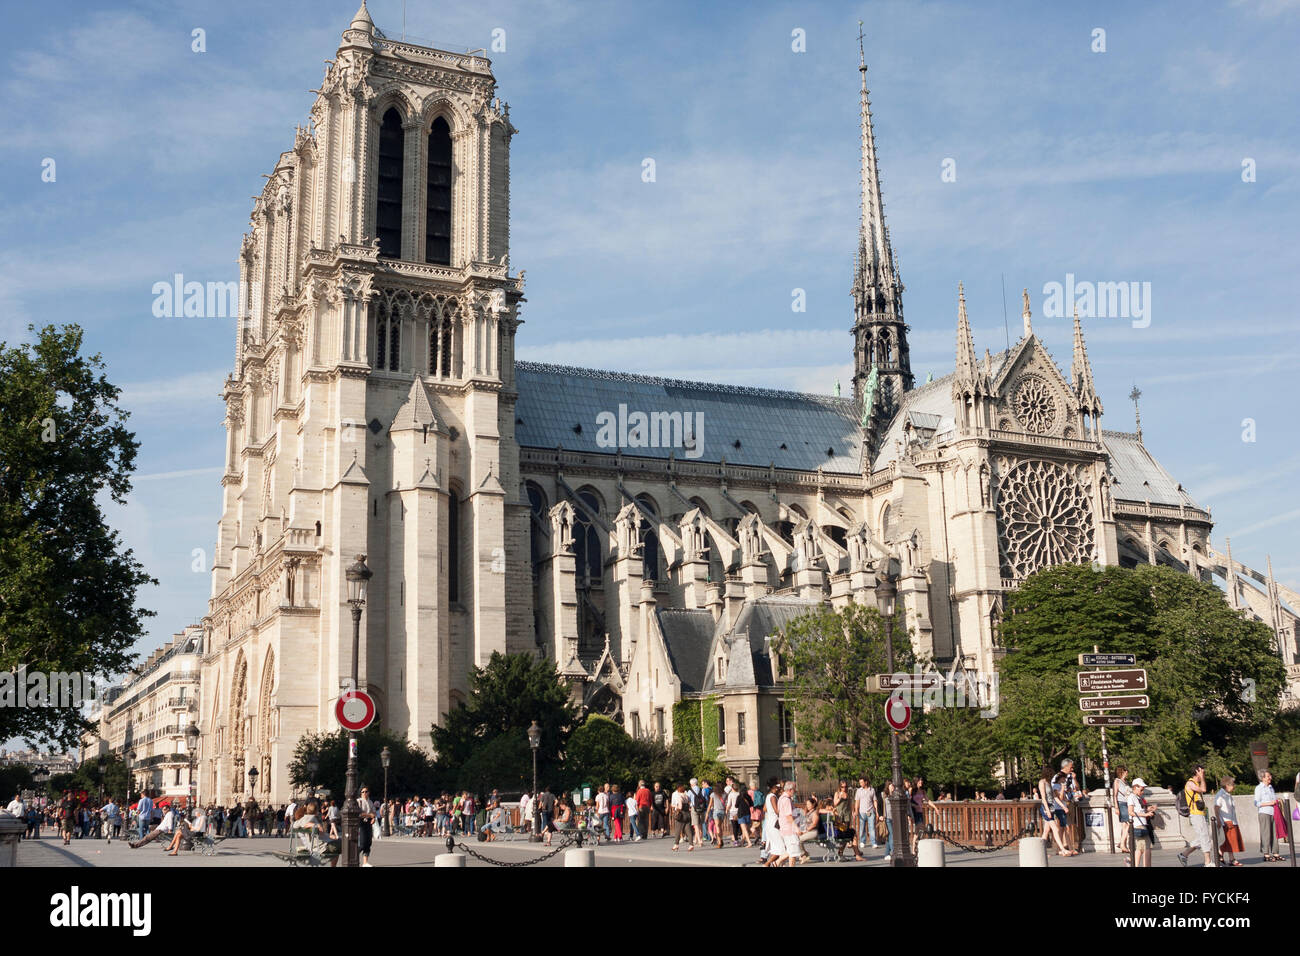 A remarkable building in Paris. France in a sunny day - Stock Image